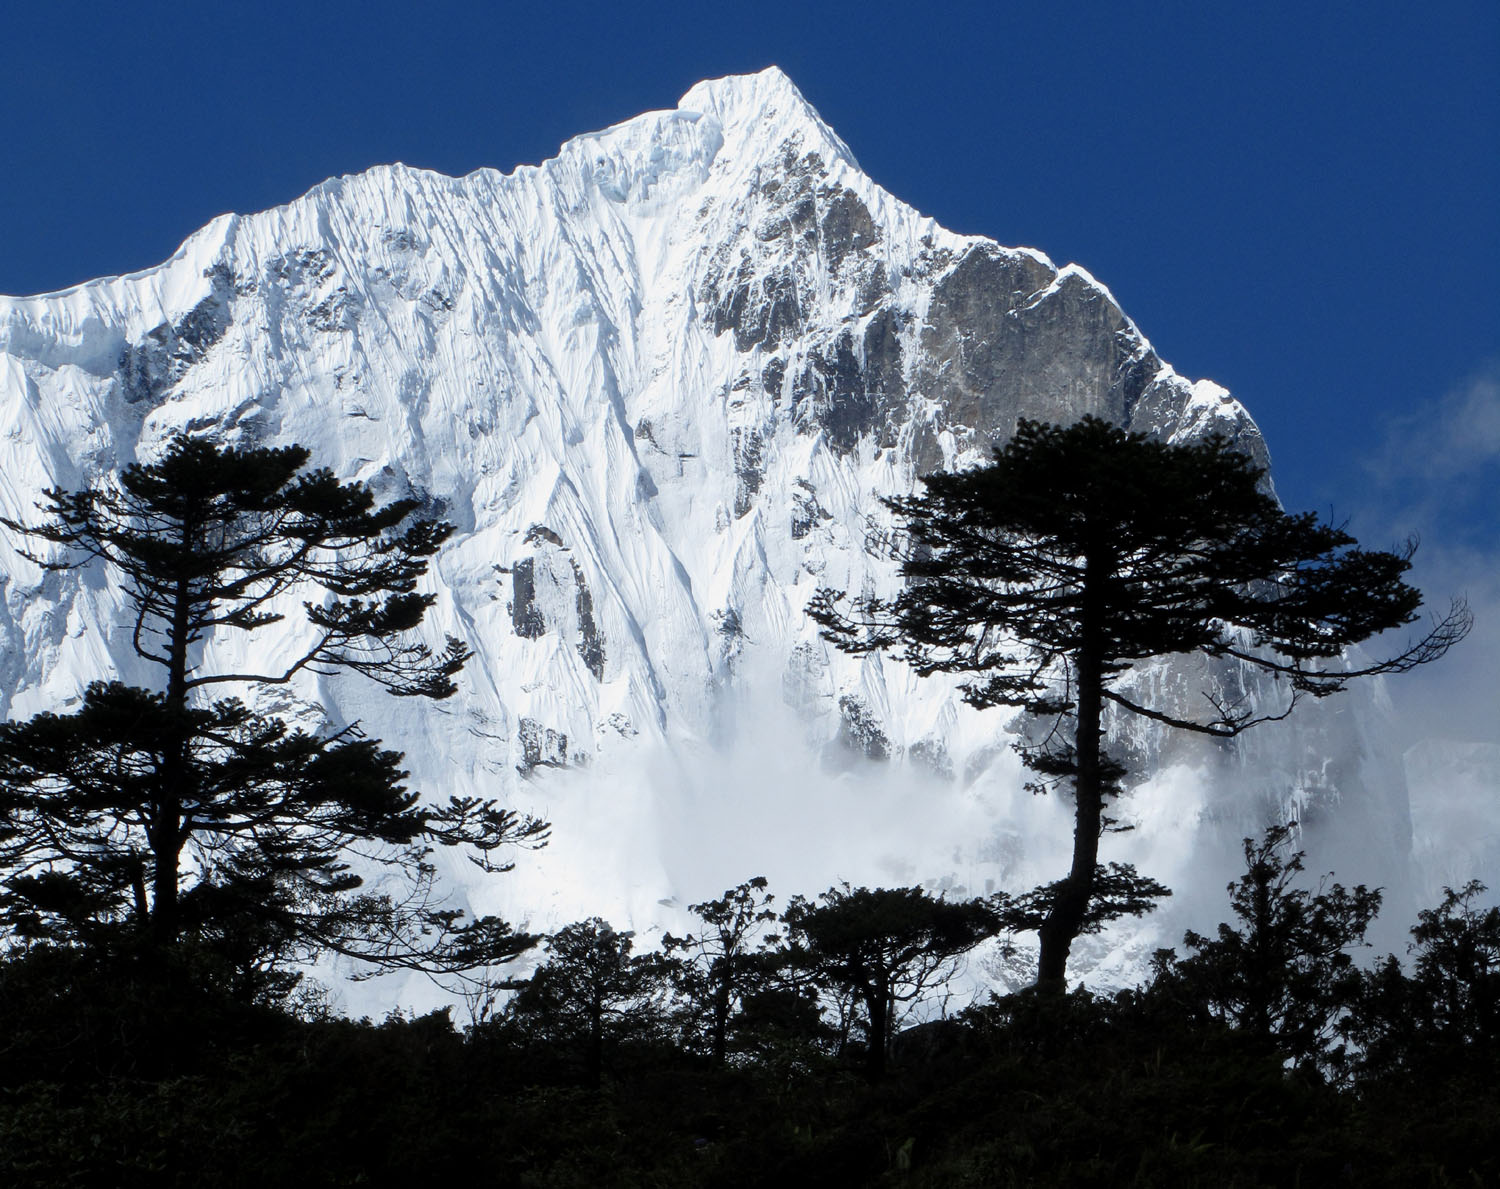 Nepal-Everest-Region-Trek-Day-07-Thame-Trees-Silhouette